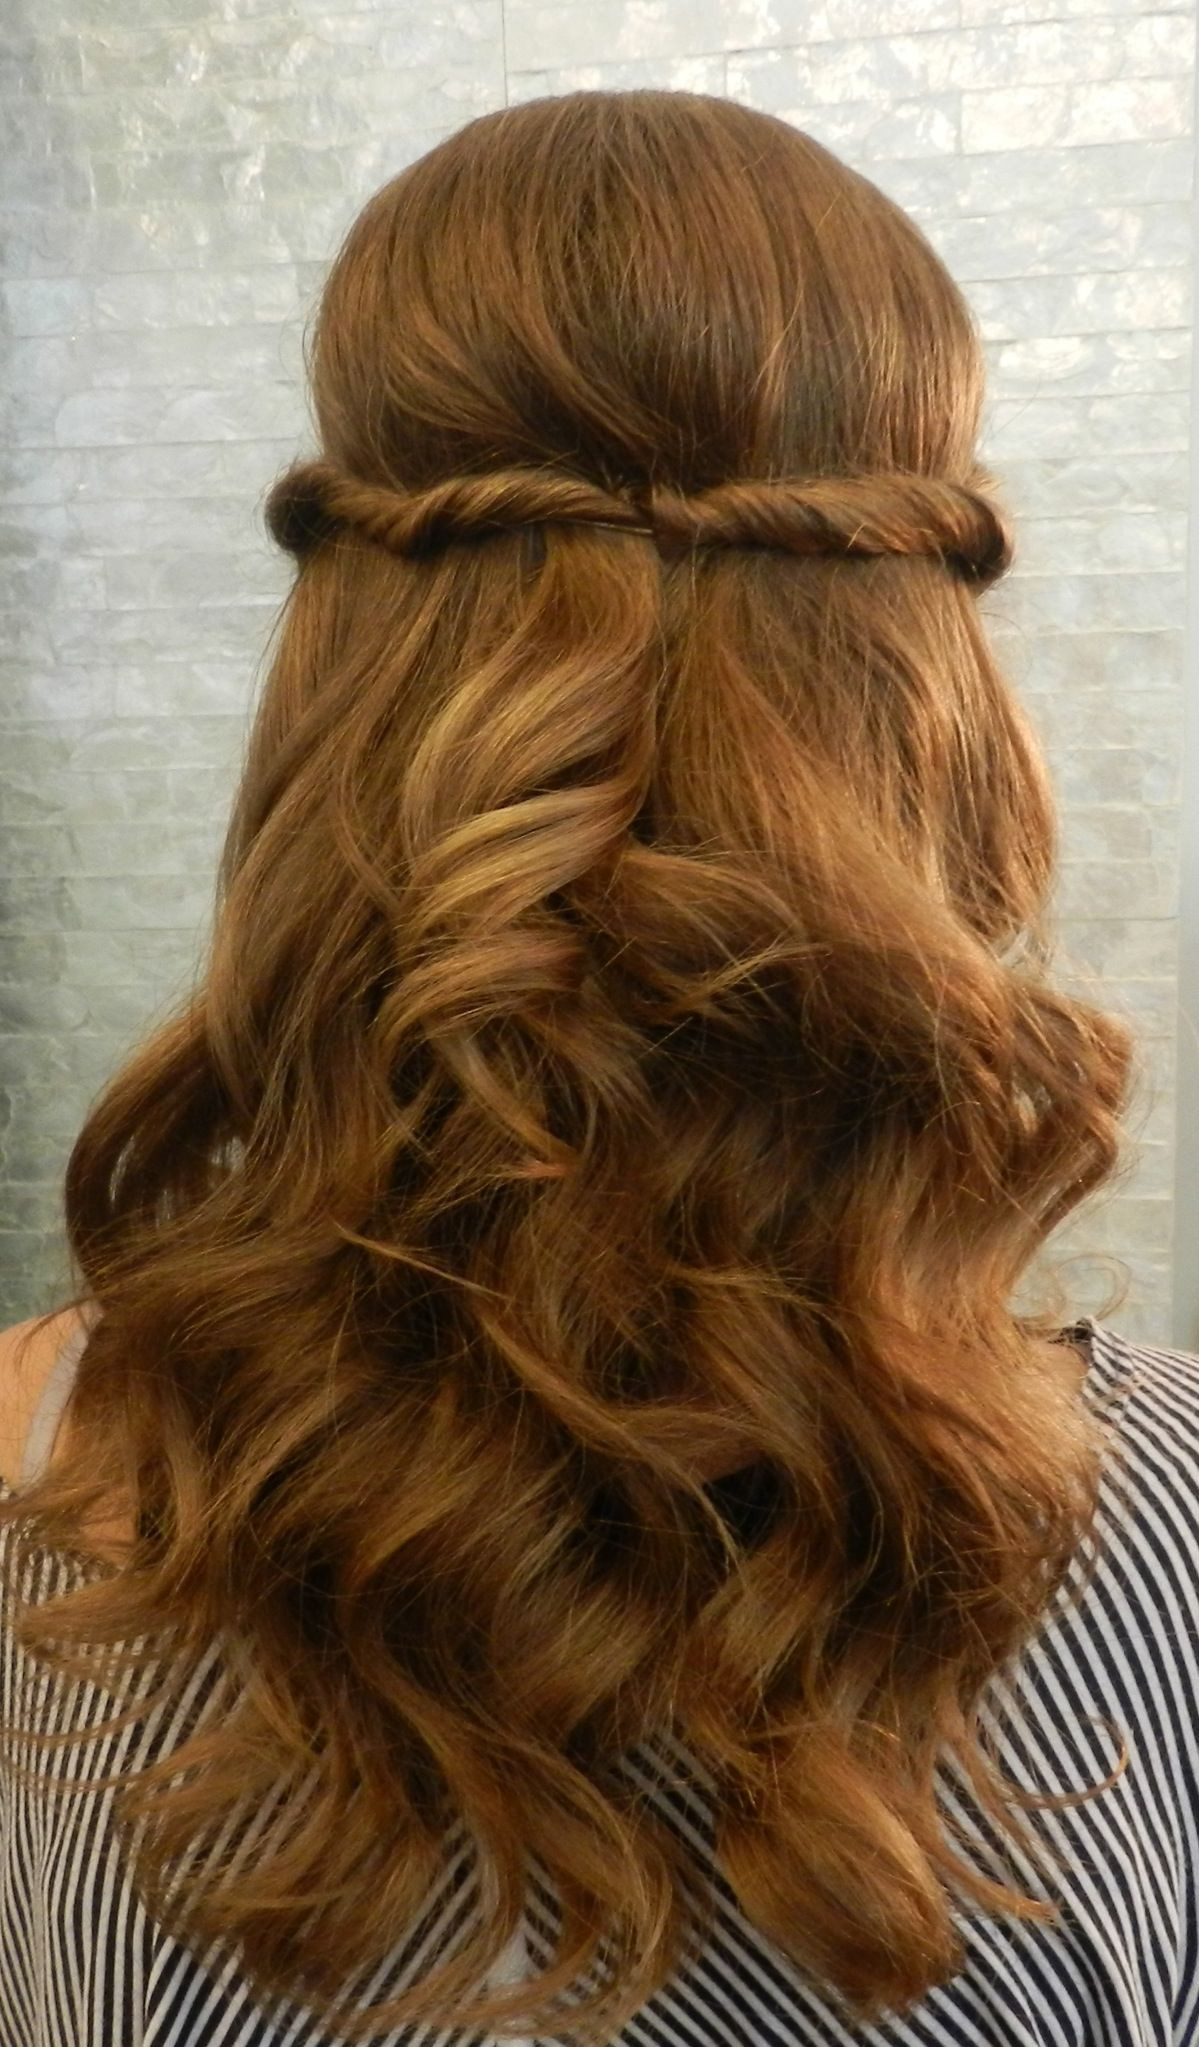 Best ideas about Promotion Hairstyles . Save or Pin Cute Hairstyles For 8th Grade Promotion Now.